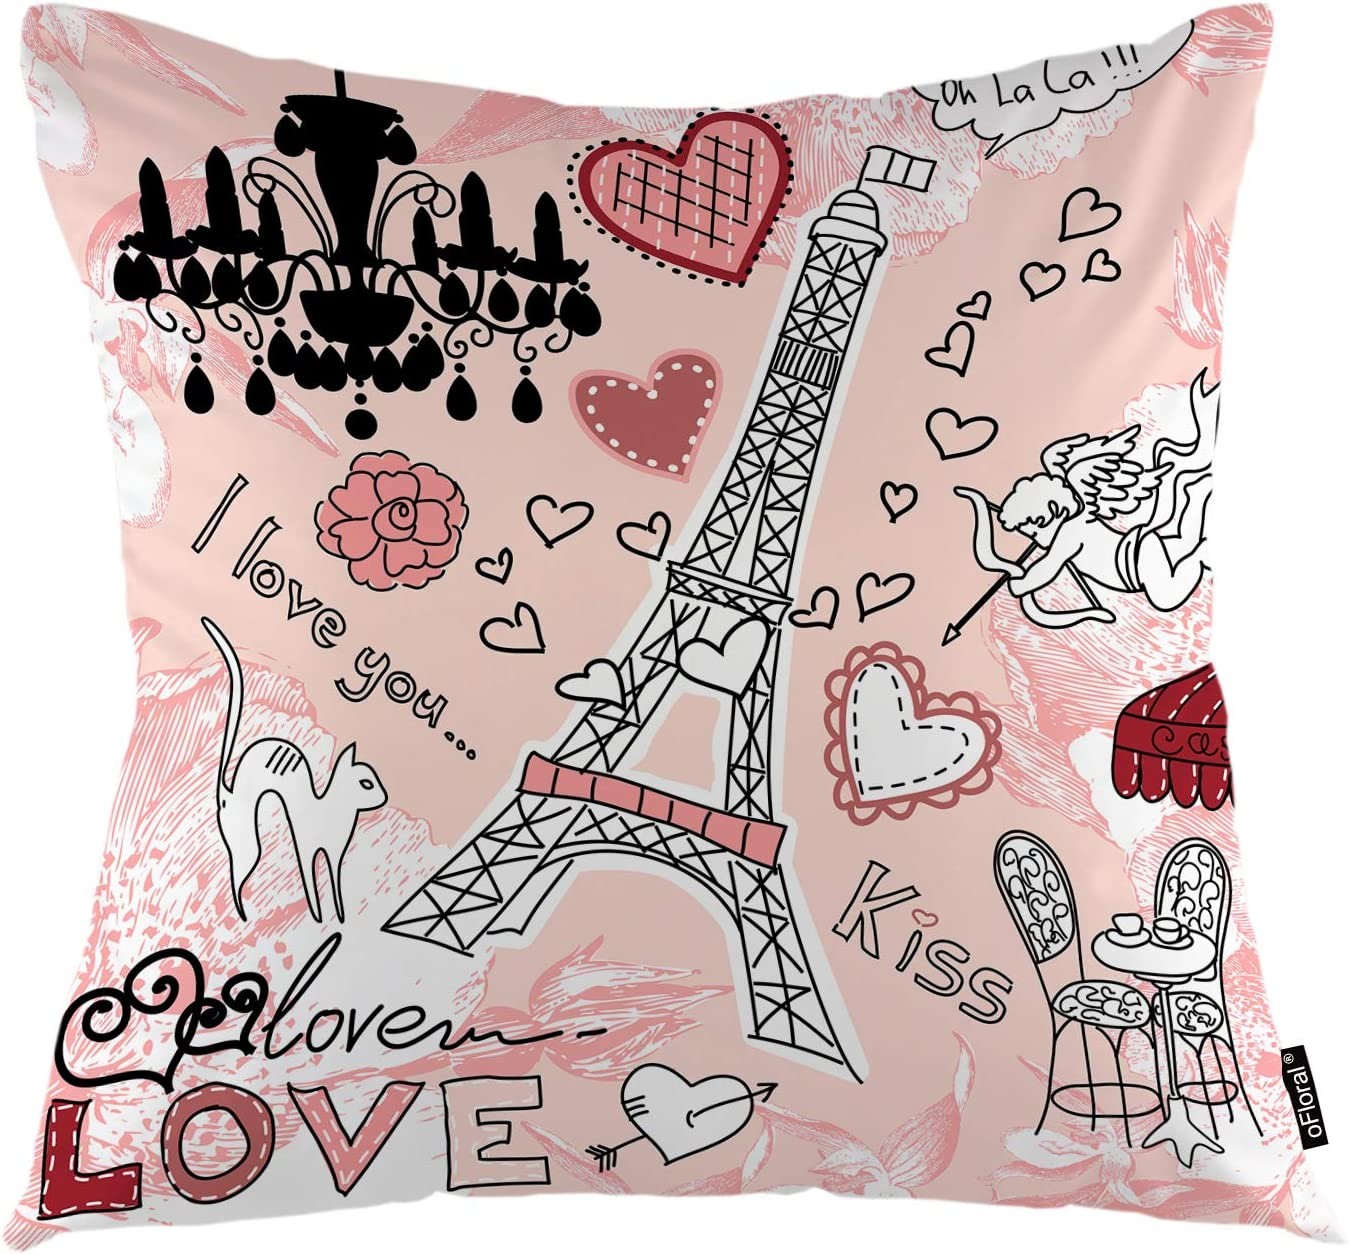 oFloral Eiffel Tower Throw Pillow Cover Love in Paris Romantic Hearts Pink Background Cushion Cover Decorative Pillow Case Home Decor for Sofa Bedroom Car 18x18 Inch Pillowcase